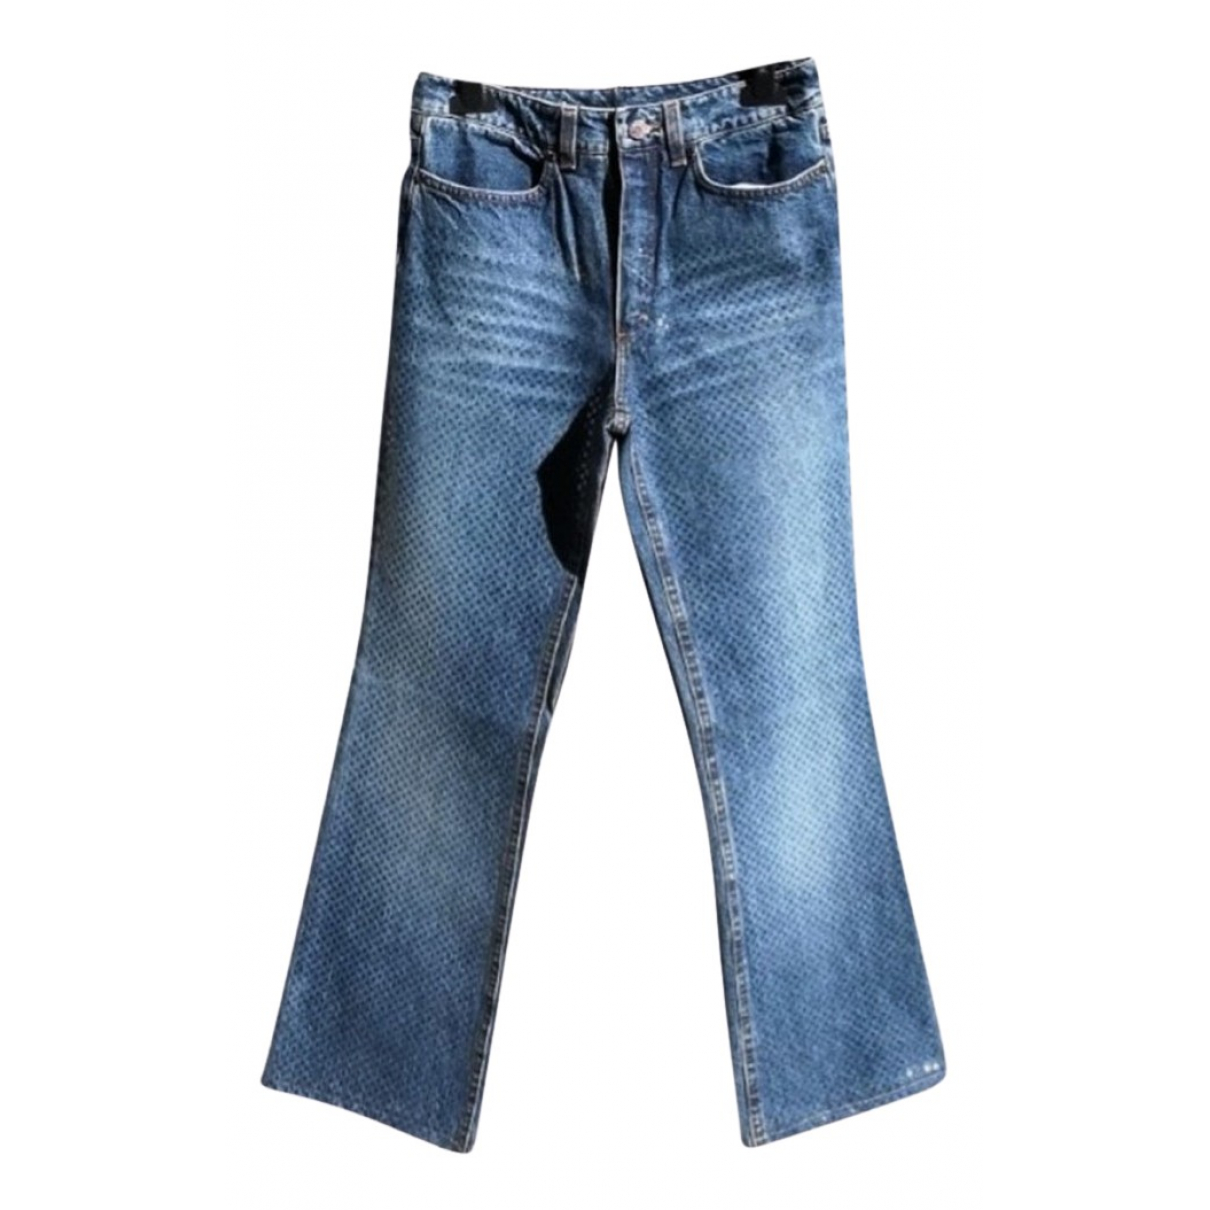 Roberto Cavalli \N Blue Cotton Jeans for Women 36 FR